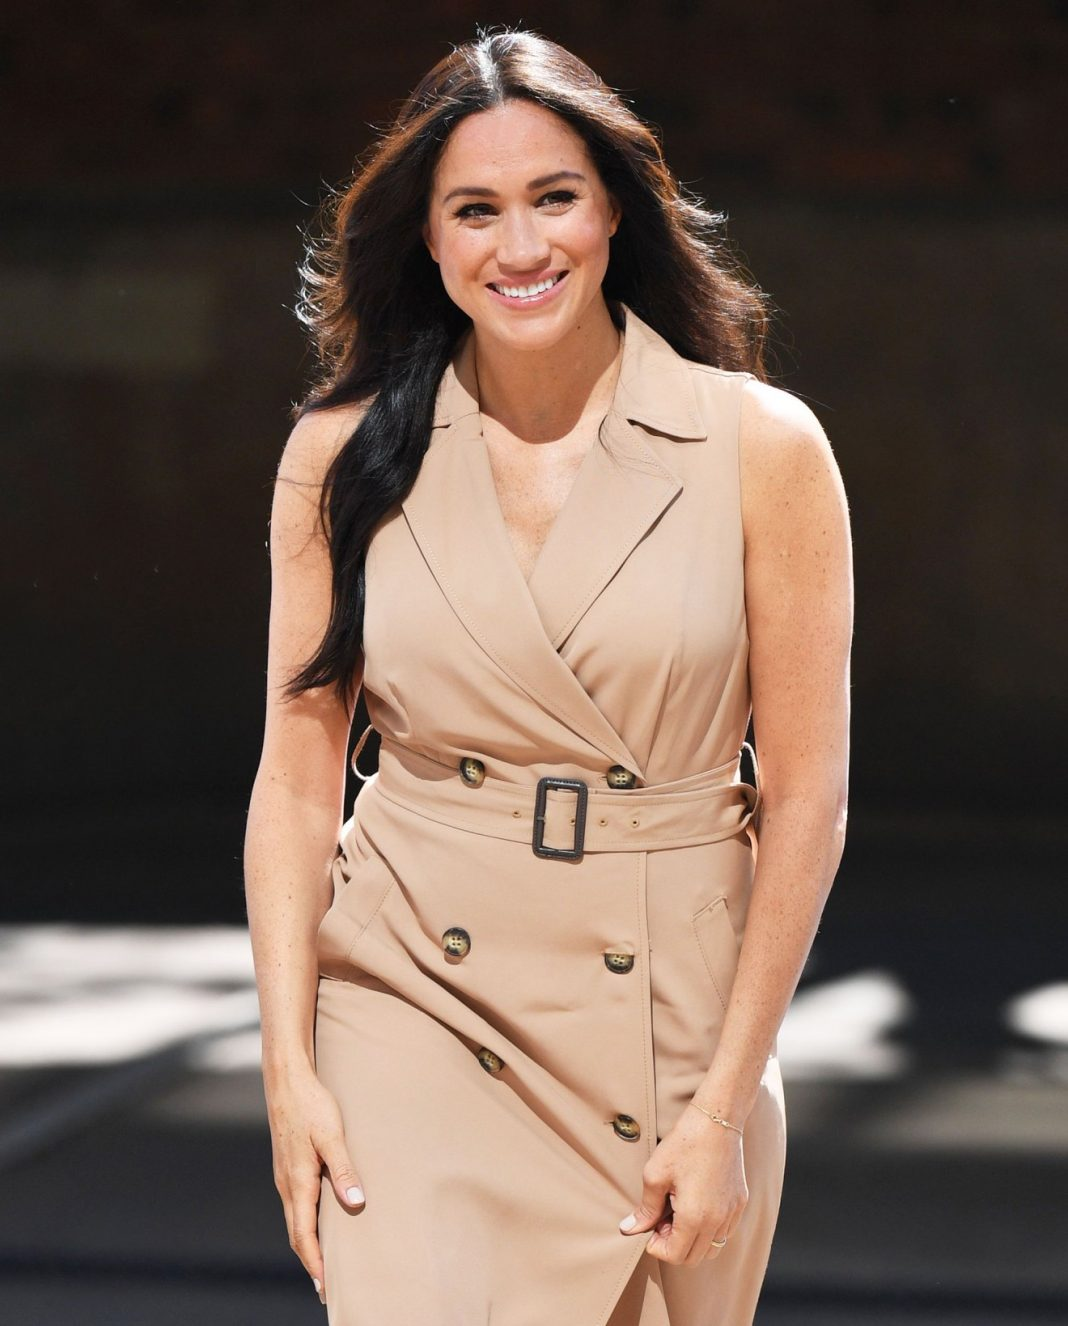 Duchess Meghan Reportedly Working on Securing Fashion Brand Deals for Future Financial Support